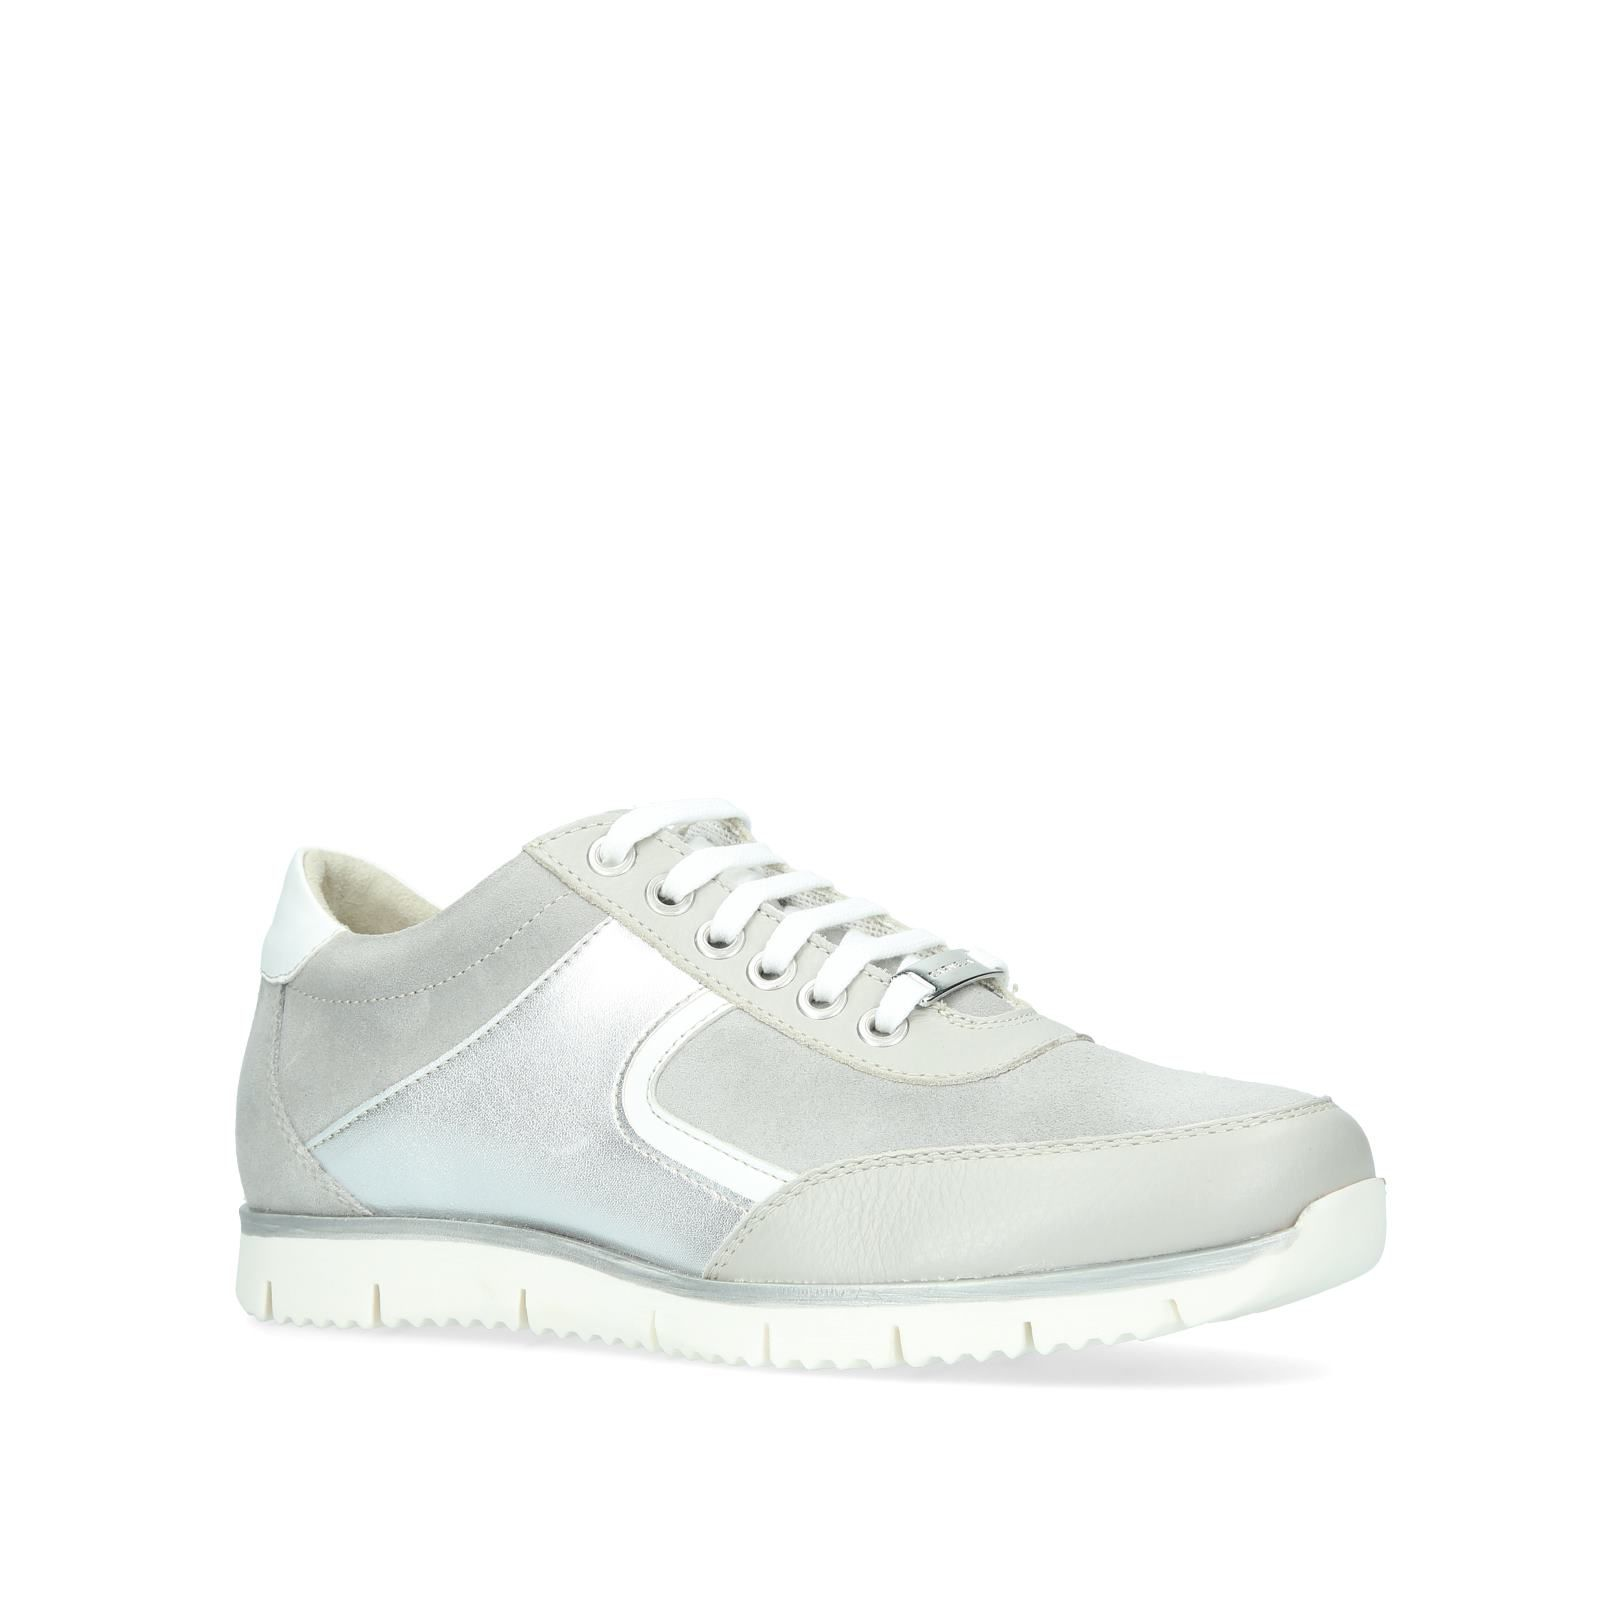 Carvela Comfort Cecil Trainers, Grey